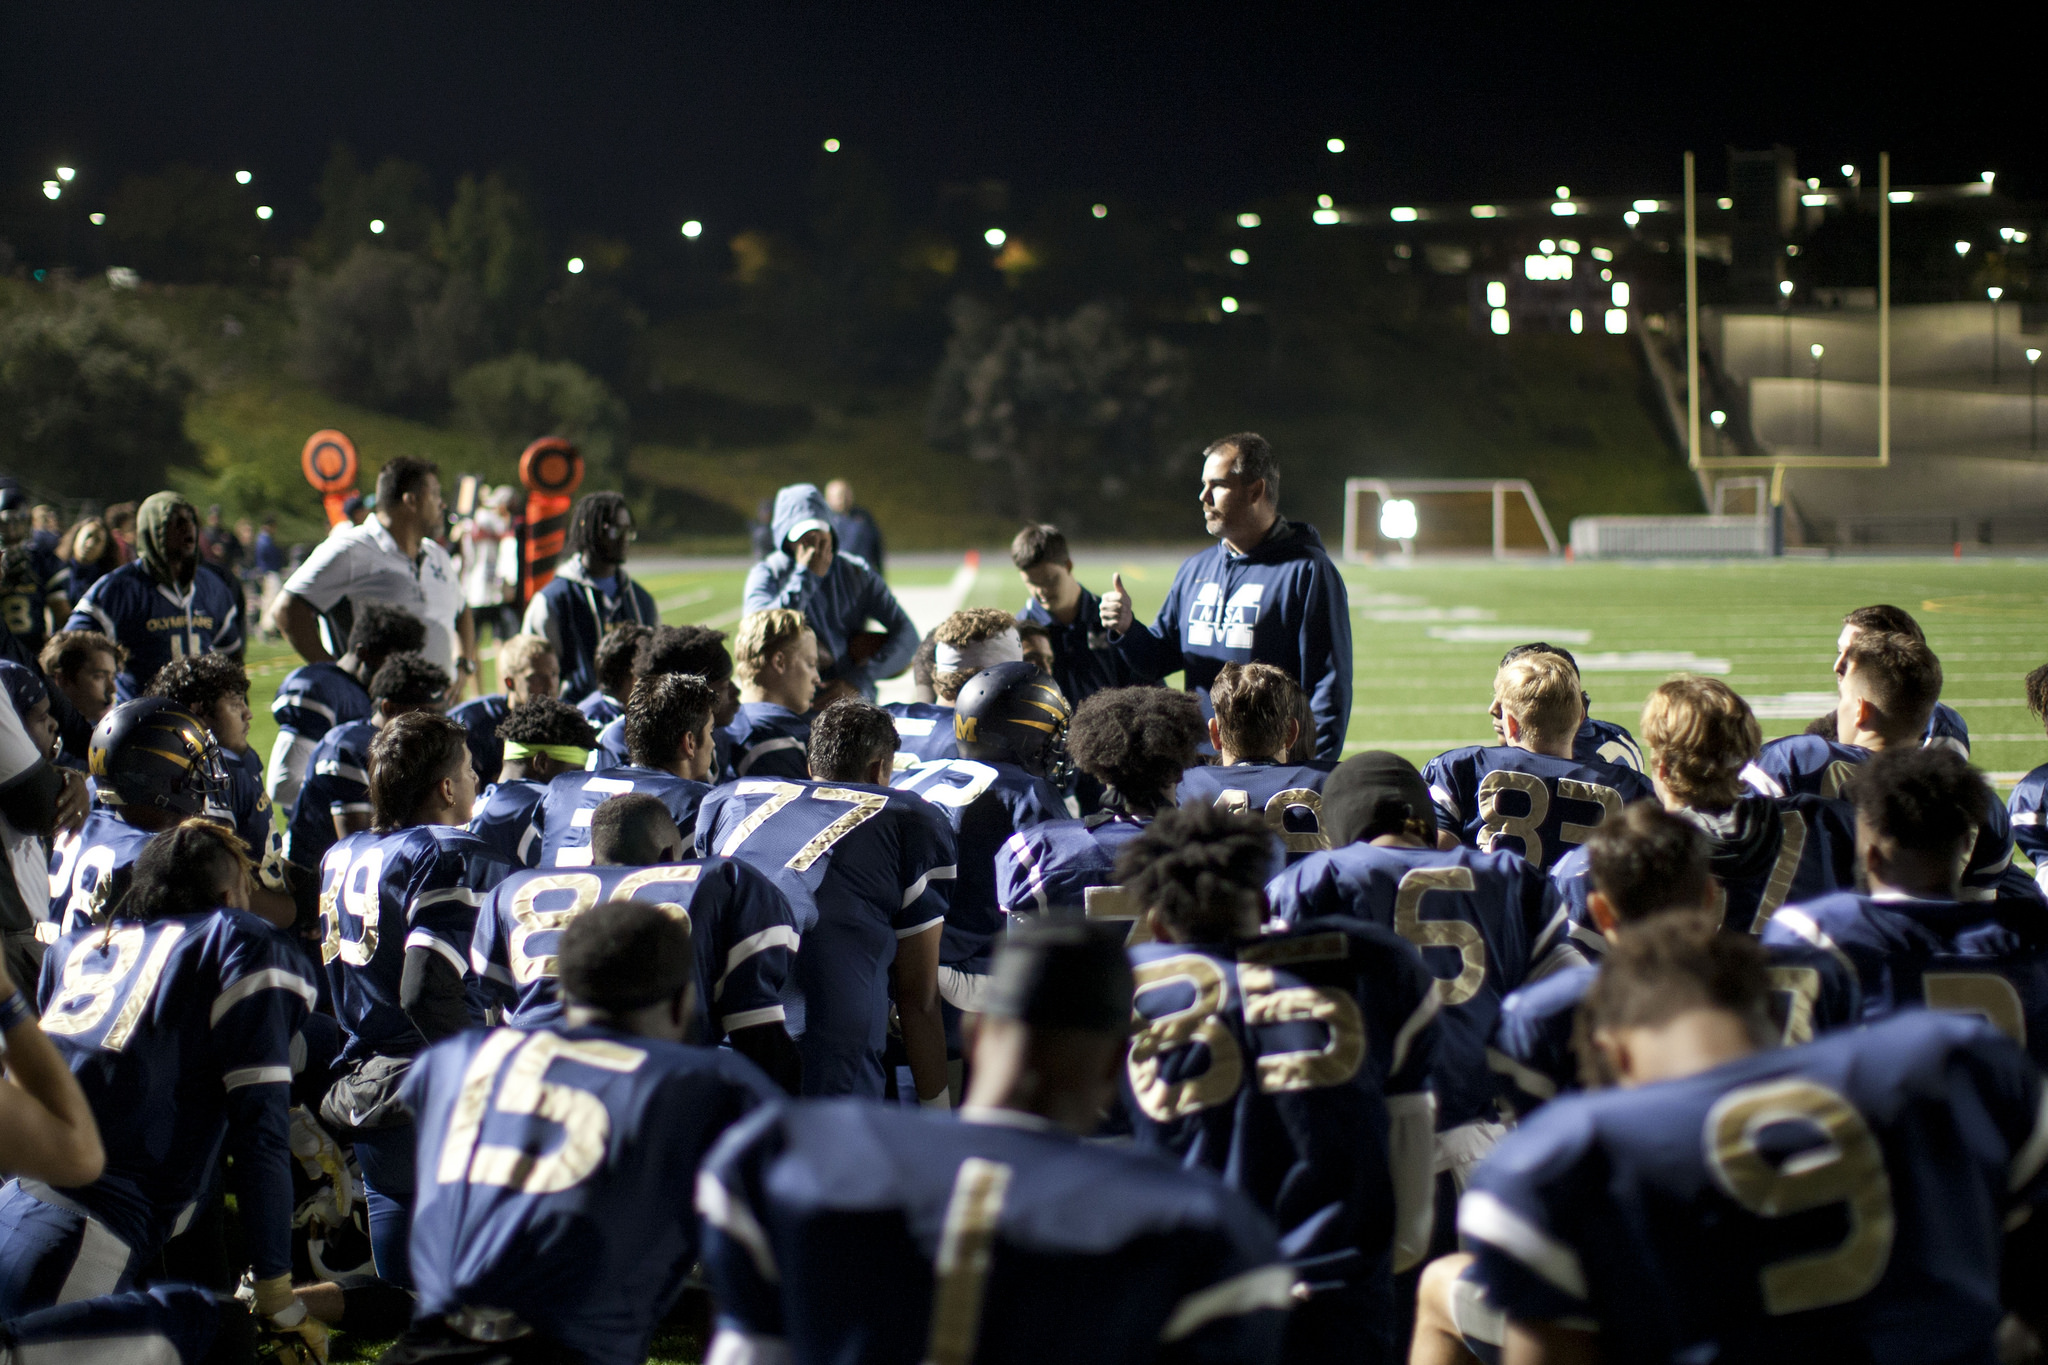 Mesa College football coach talks to the team on the field